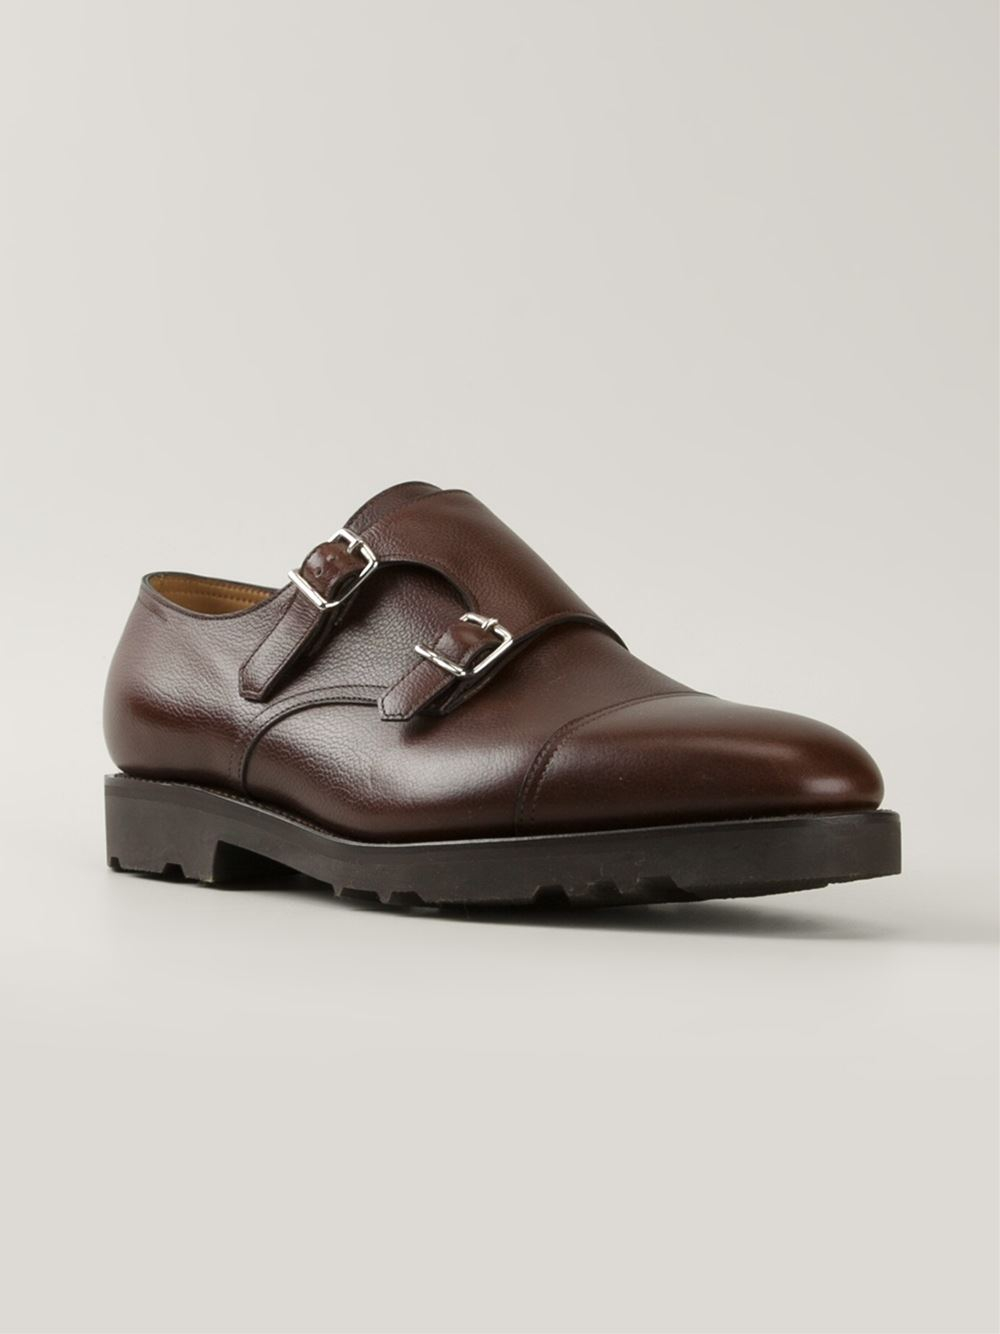 John Lobb Shoes >> John lobb 'william' Monk Shoes in Brown for Men | Lyst